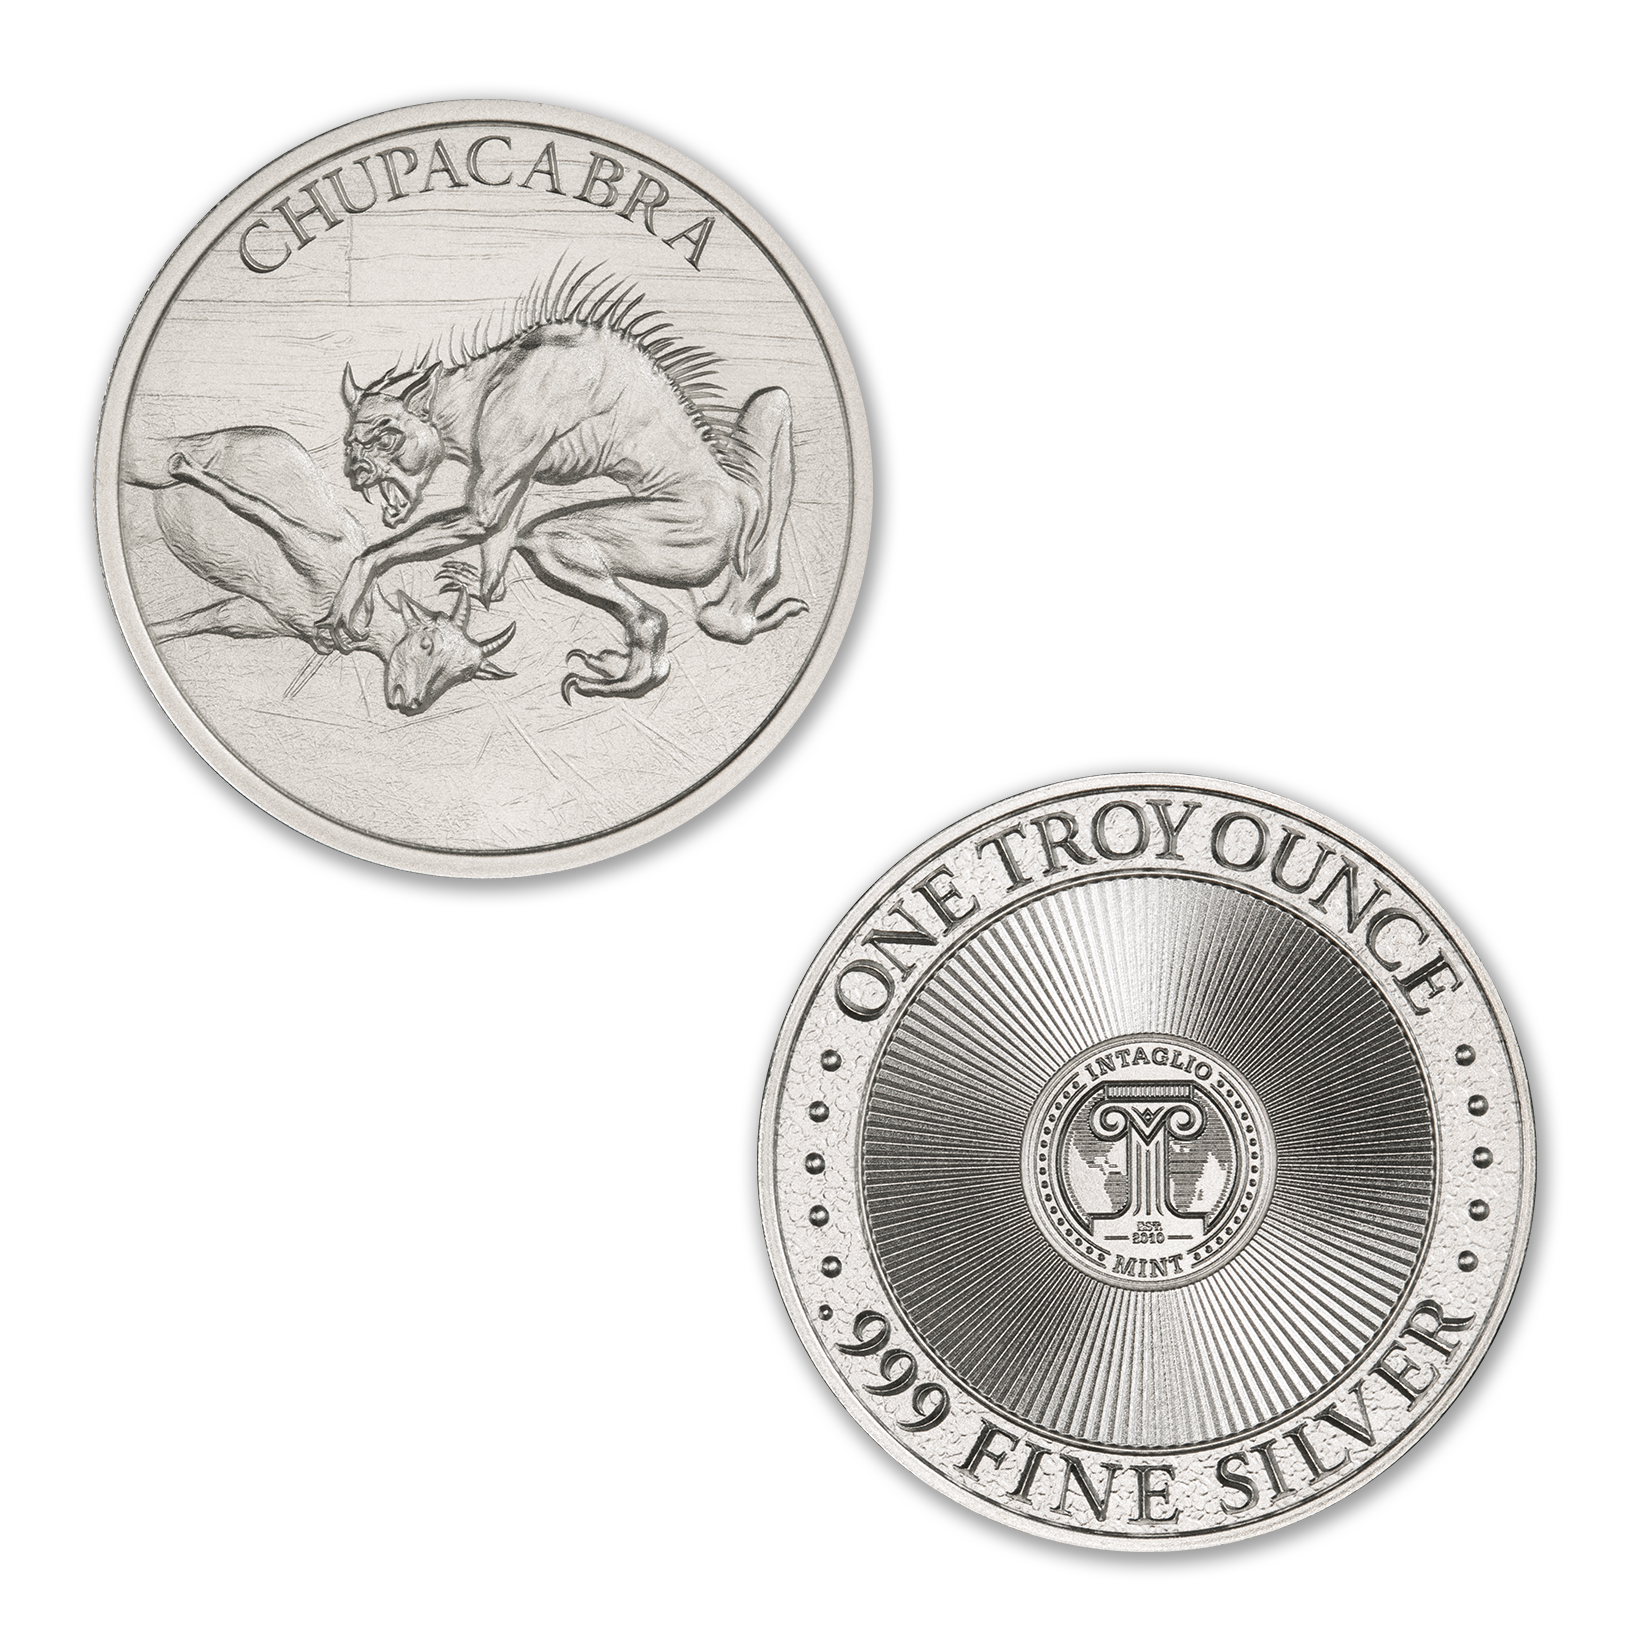 CHUPACABRA – 1 TROY OUNCE – 39MM